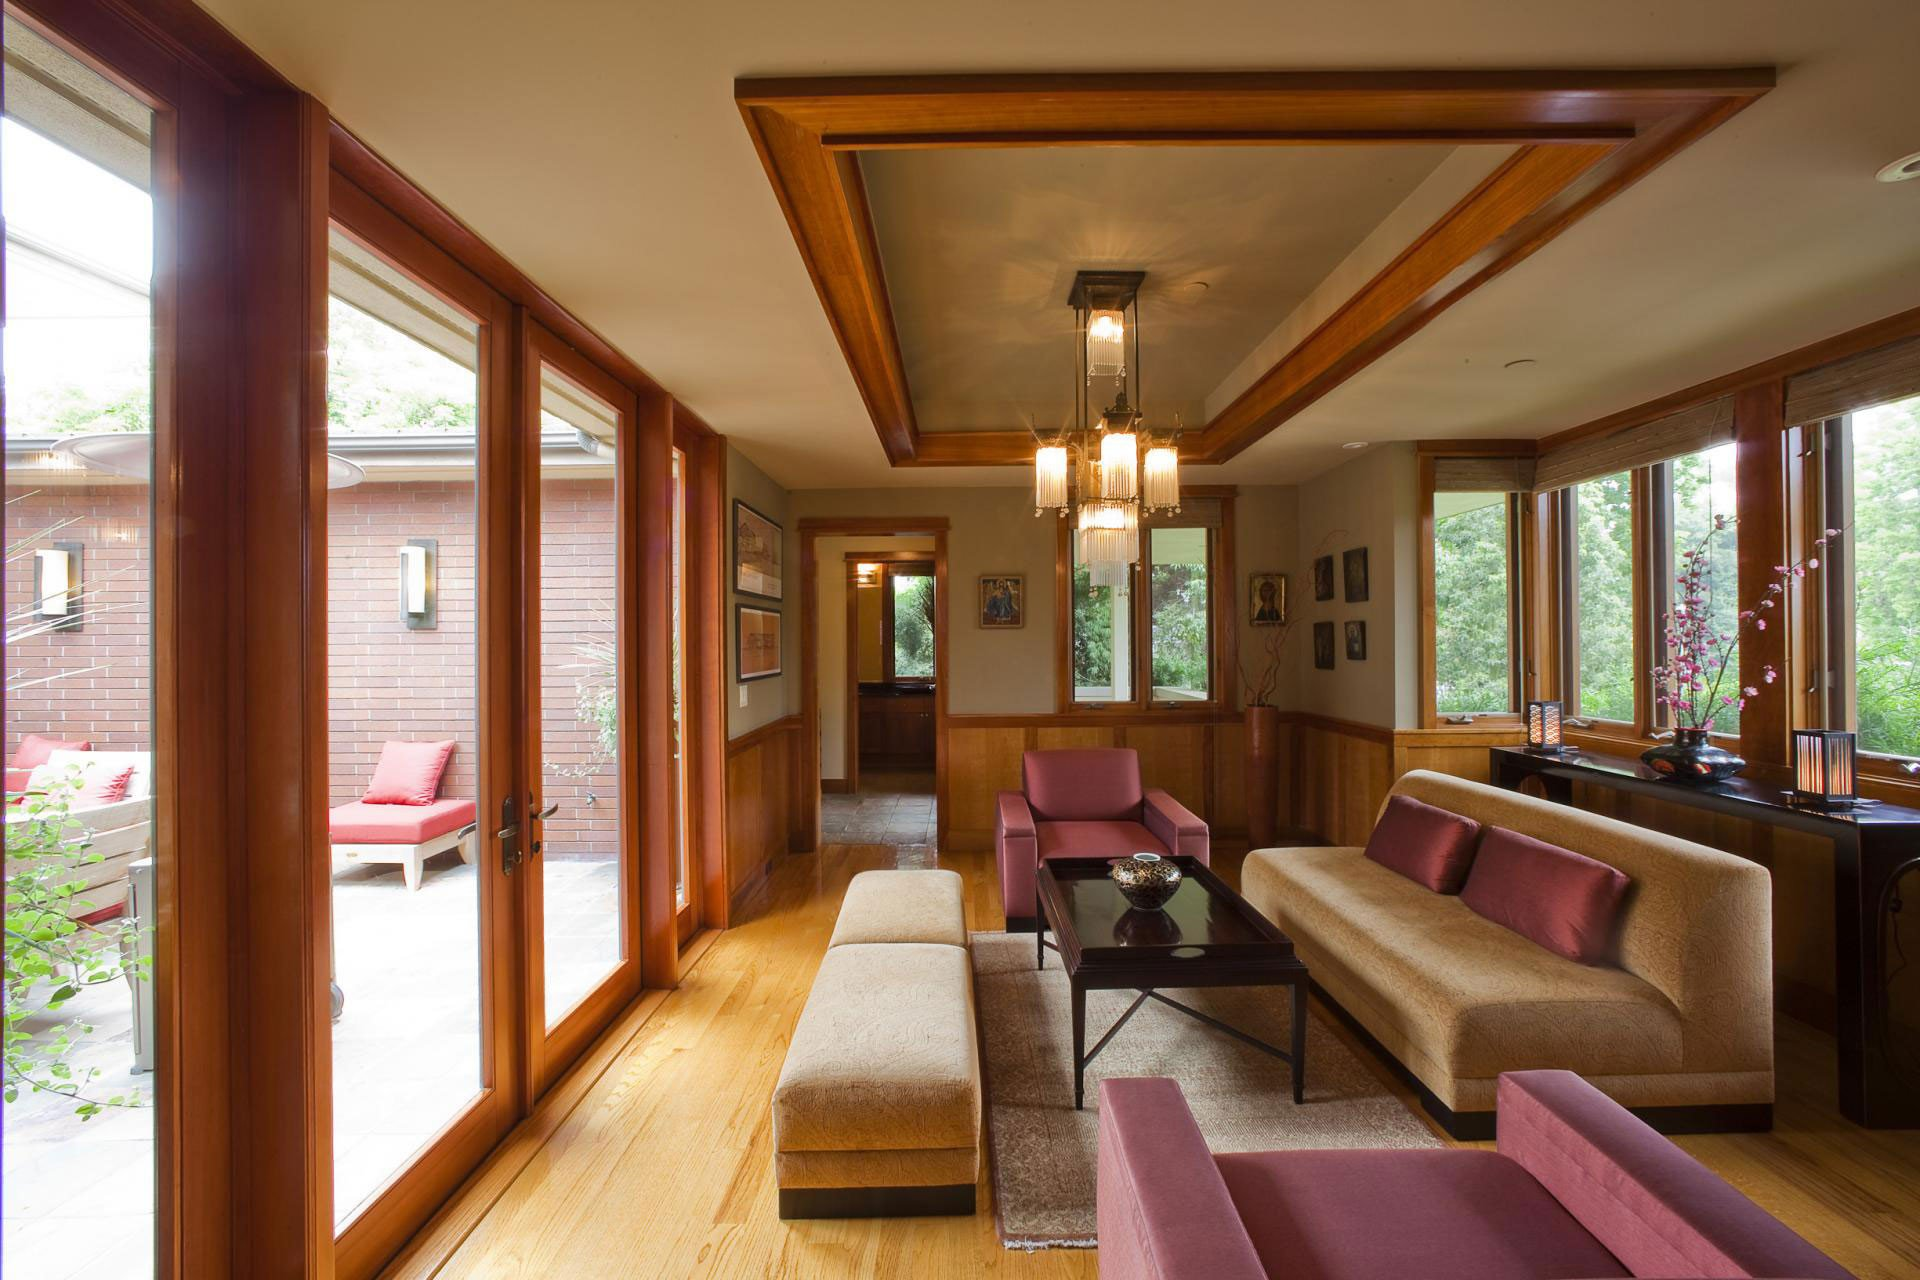 Small Living Room Interior Design Best Of Buckskin Drive Designed by Whipple Russell Architects